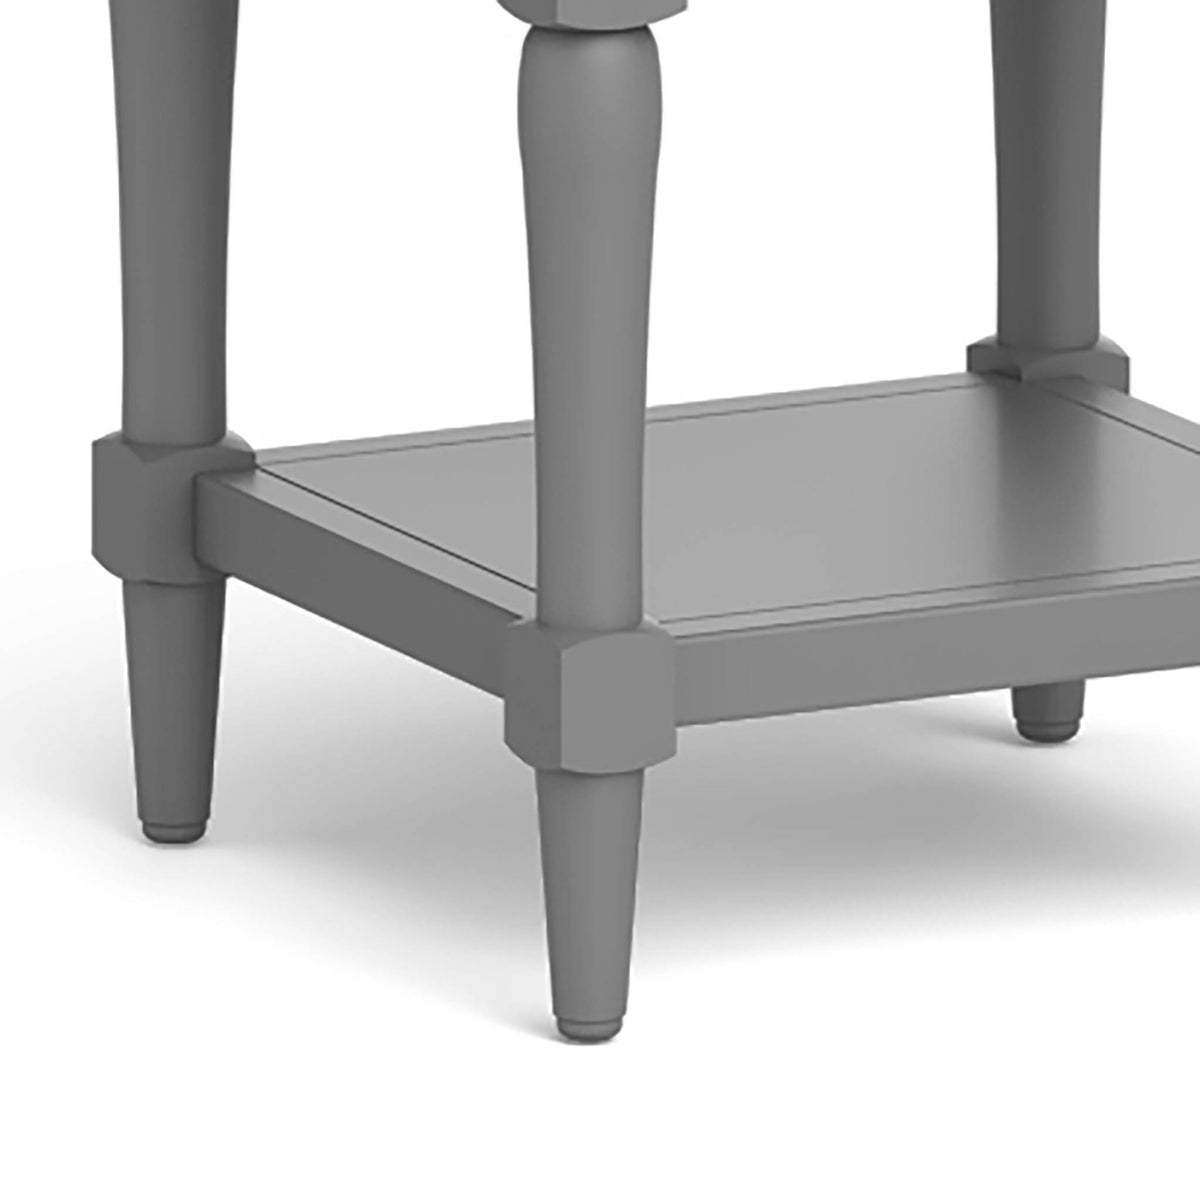 The Mulsanne Grey Side Table - Close Up of Table Legs